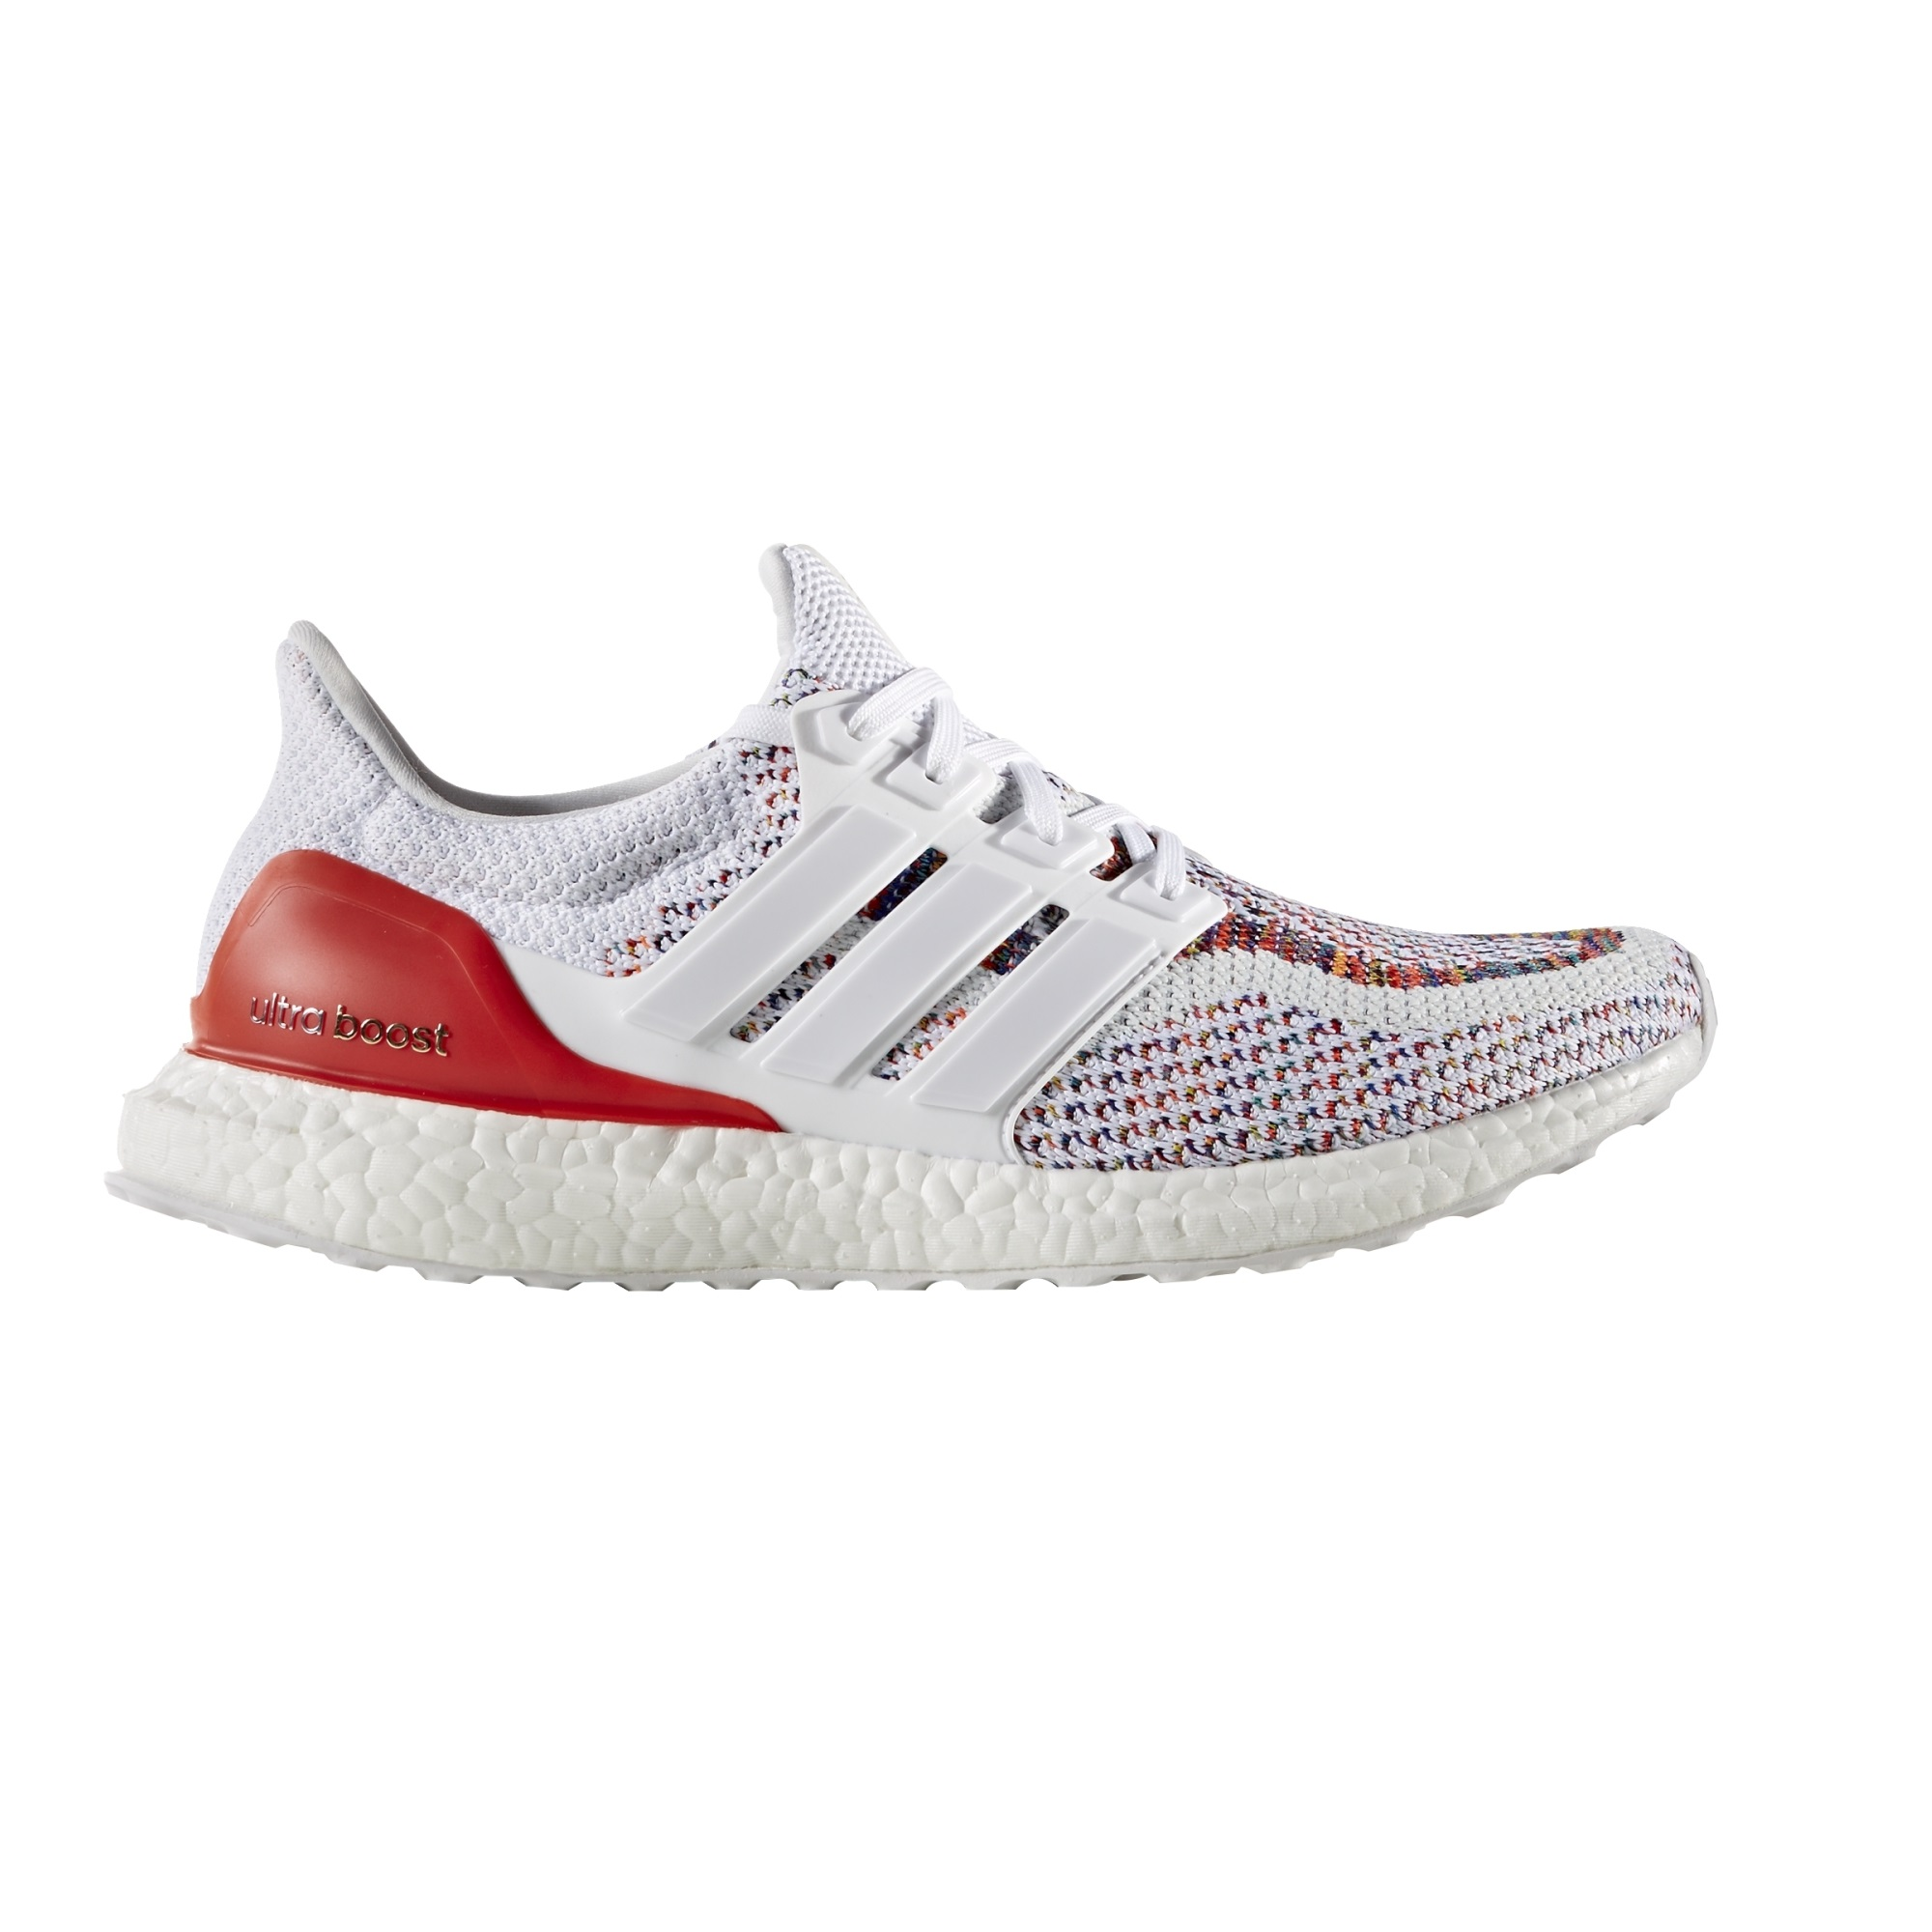 44a18329c106 Adidas Ultra Boost White Red - Alton Sports Running Specialist